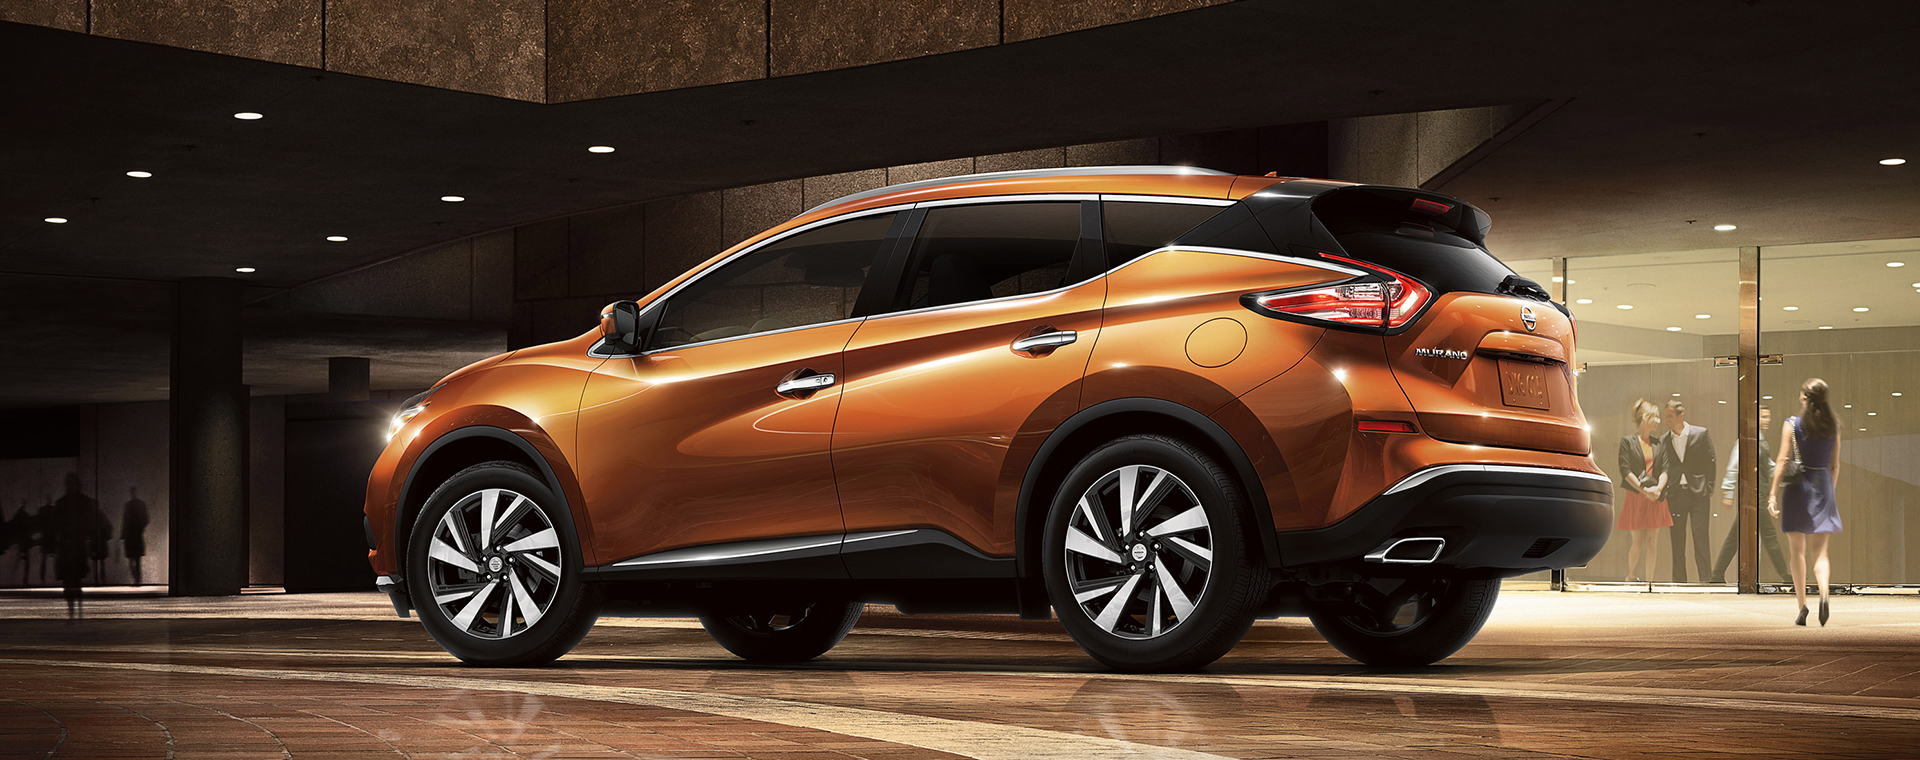 New Murano inventory at Quirk Nissan